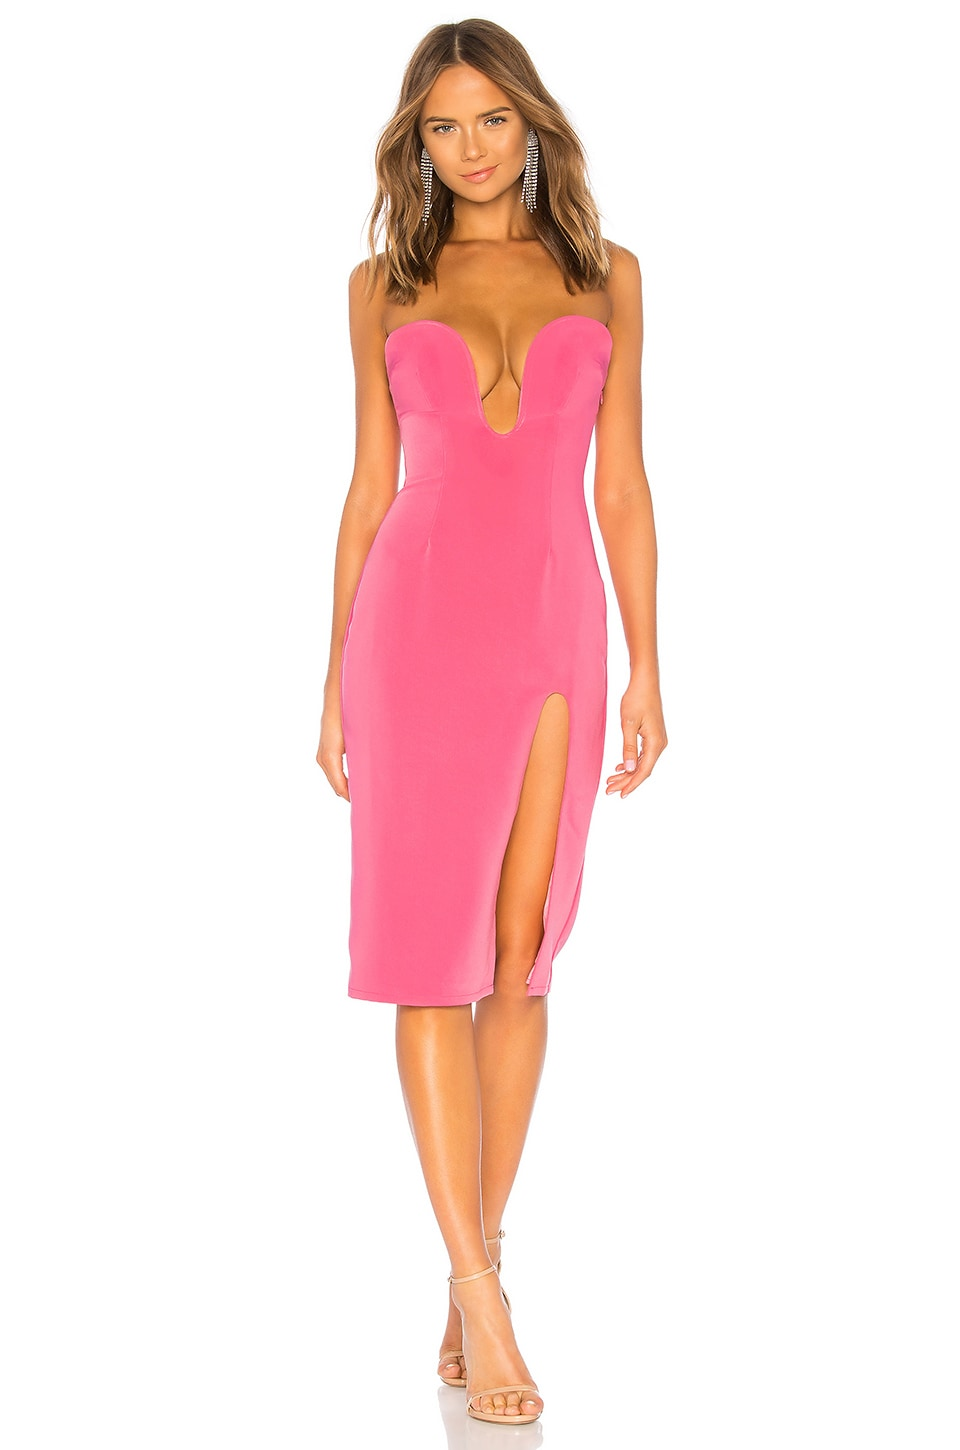 h:ours Lazaro Midi Dress in Pink Candy